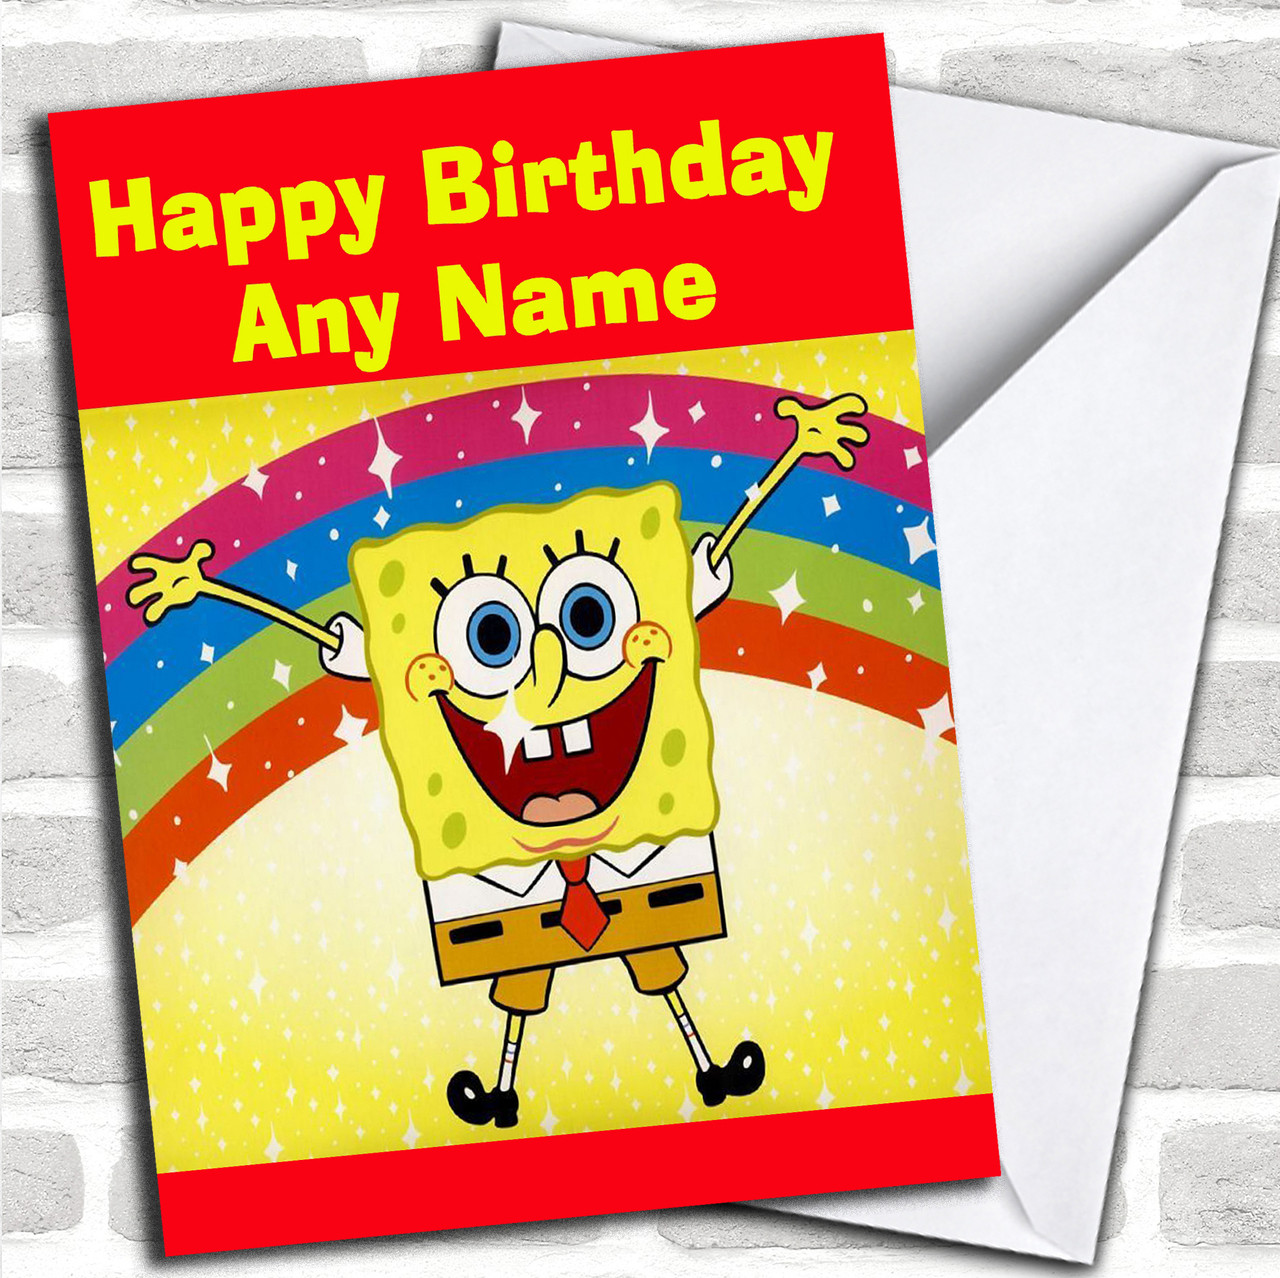 photograph about Printable Children's Birthday Cards named SpongeBob Squarepants Rainbow Tailored Childrens Birthday Card